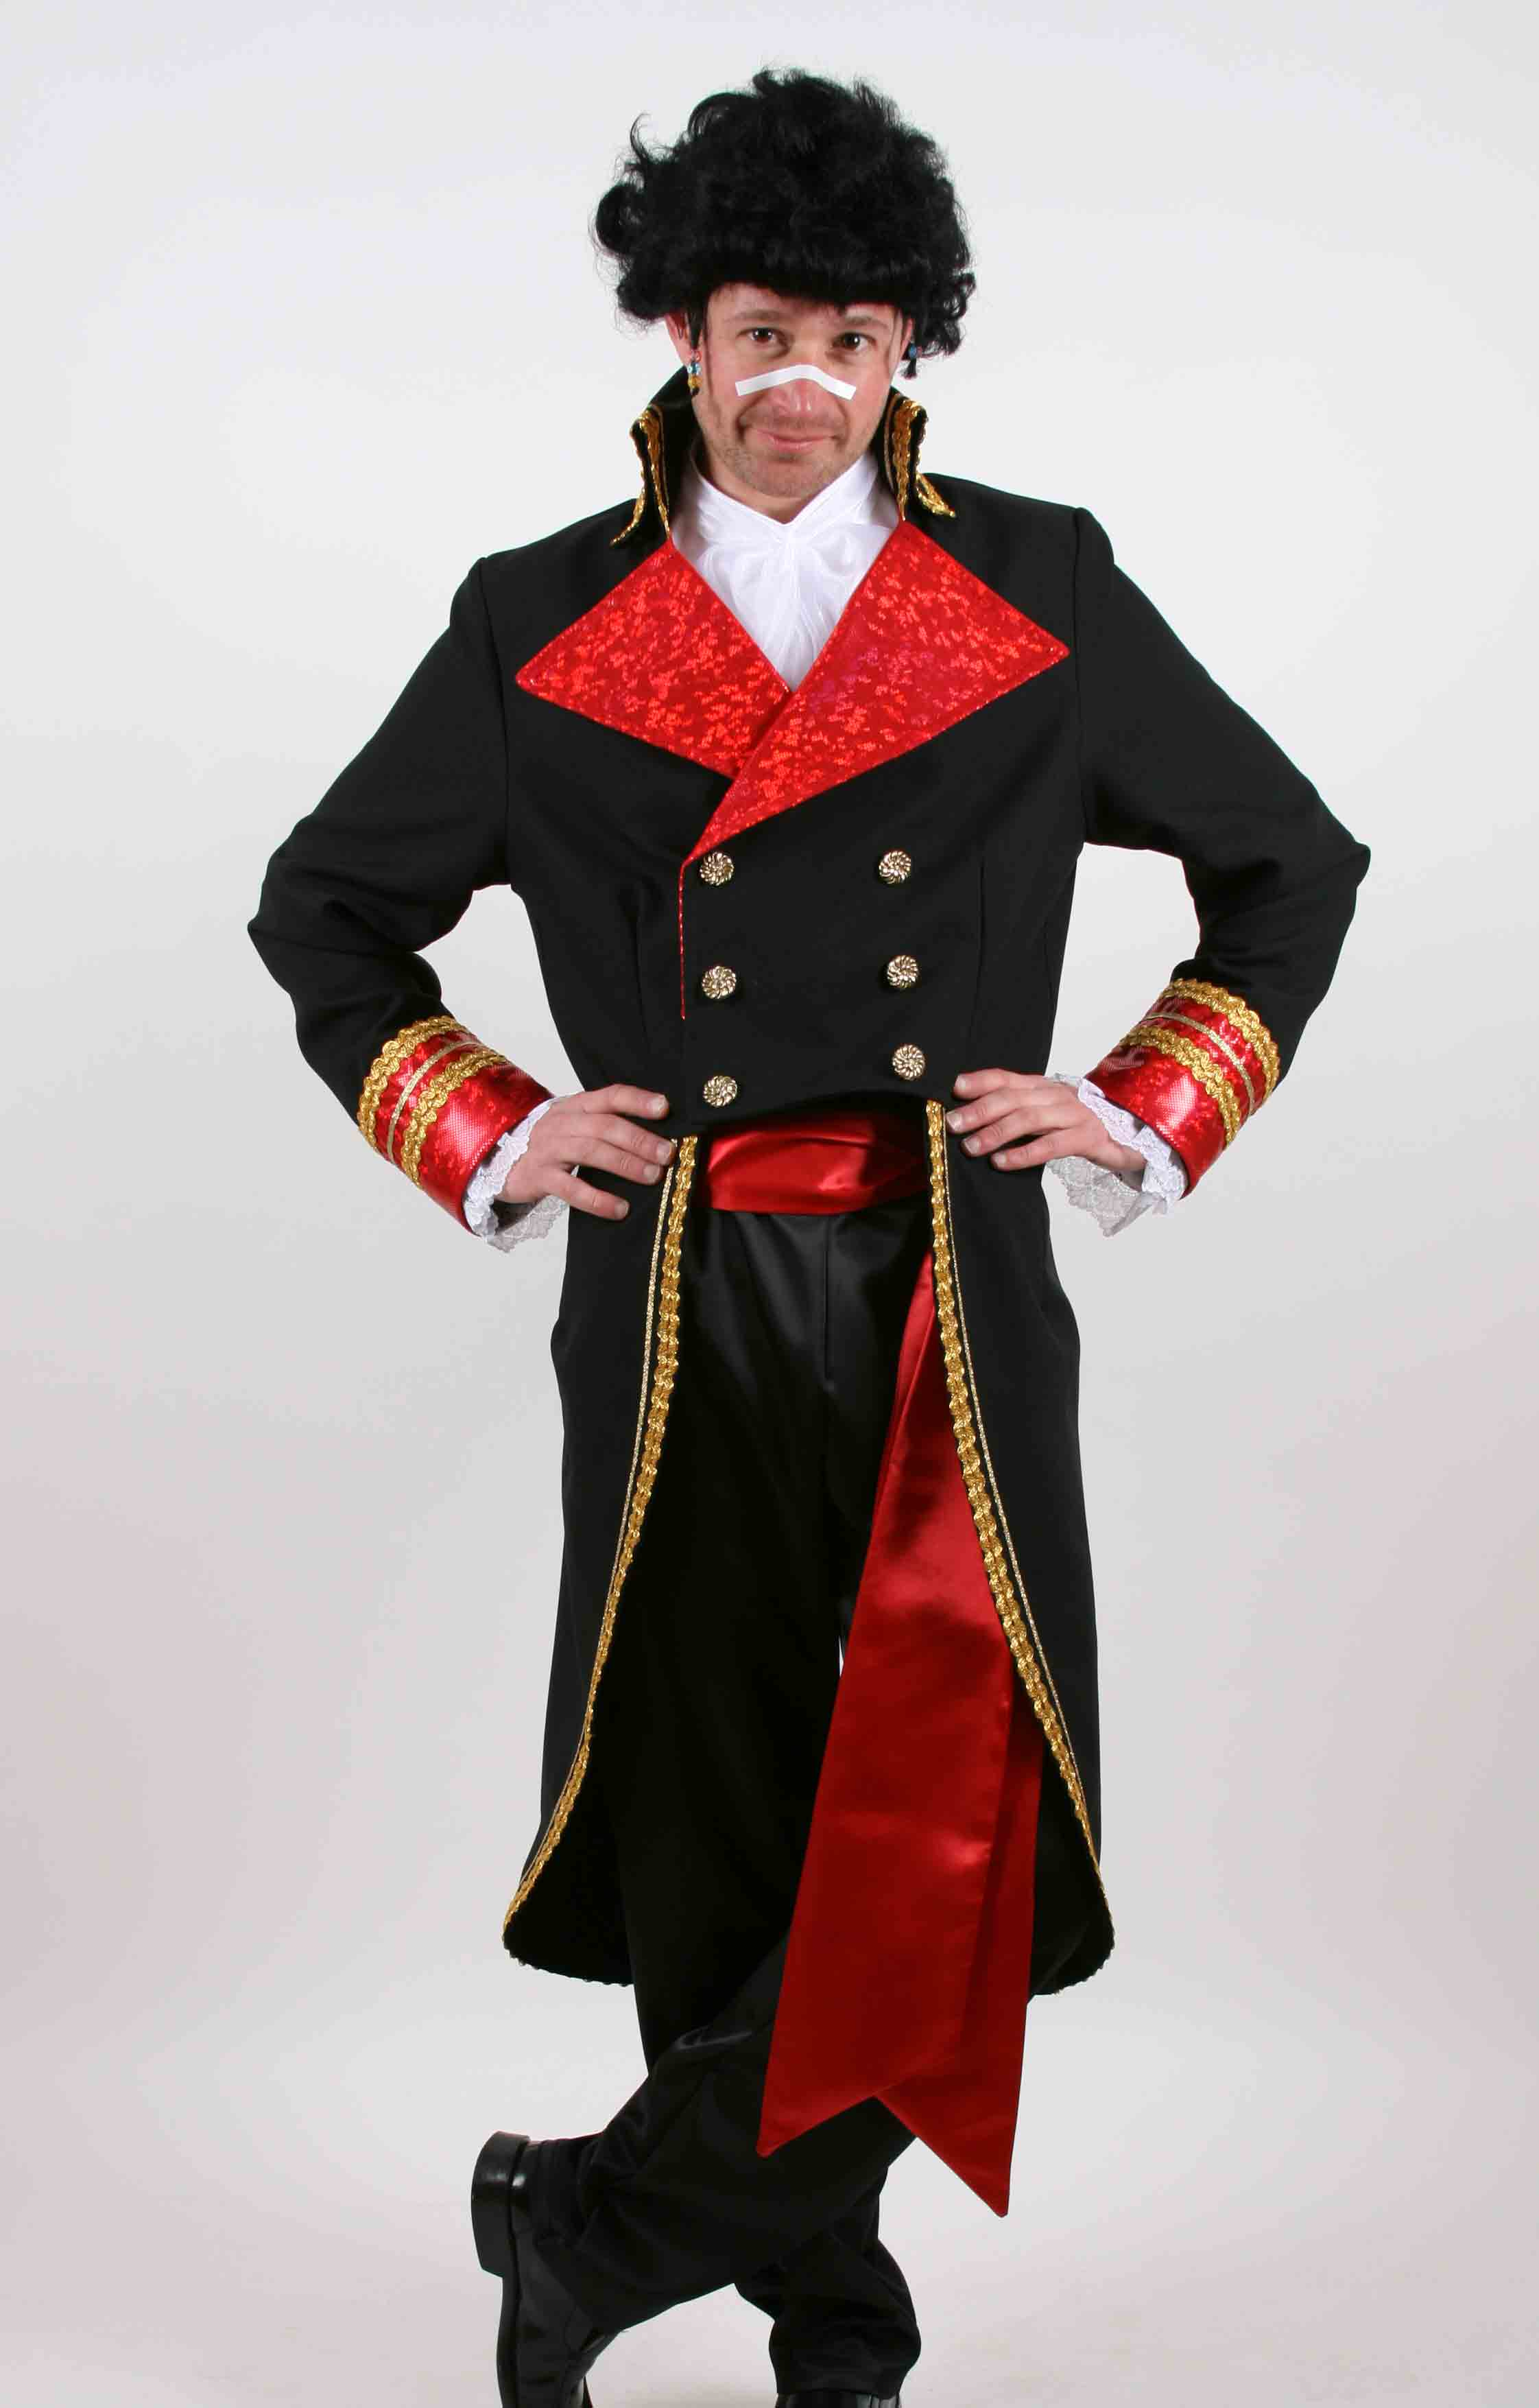 Prince Charming Adam Ant costume